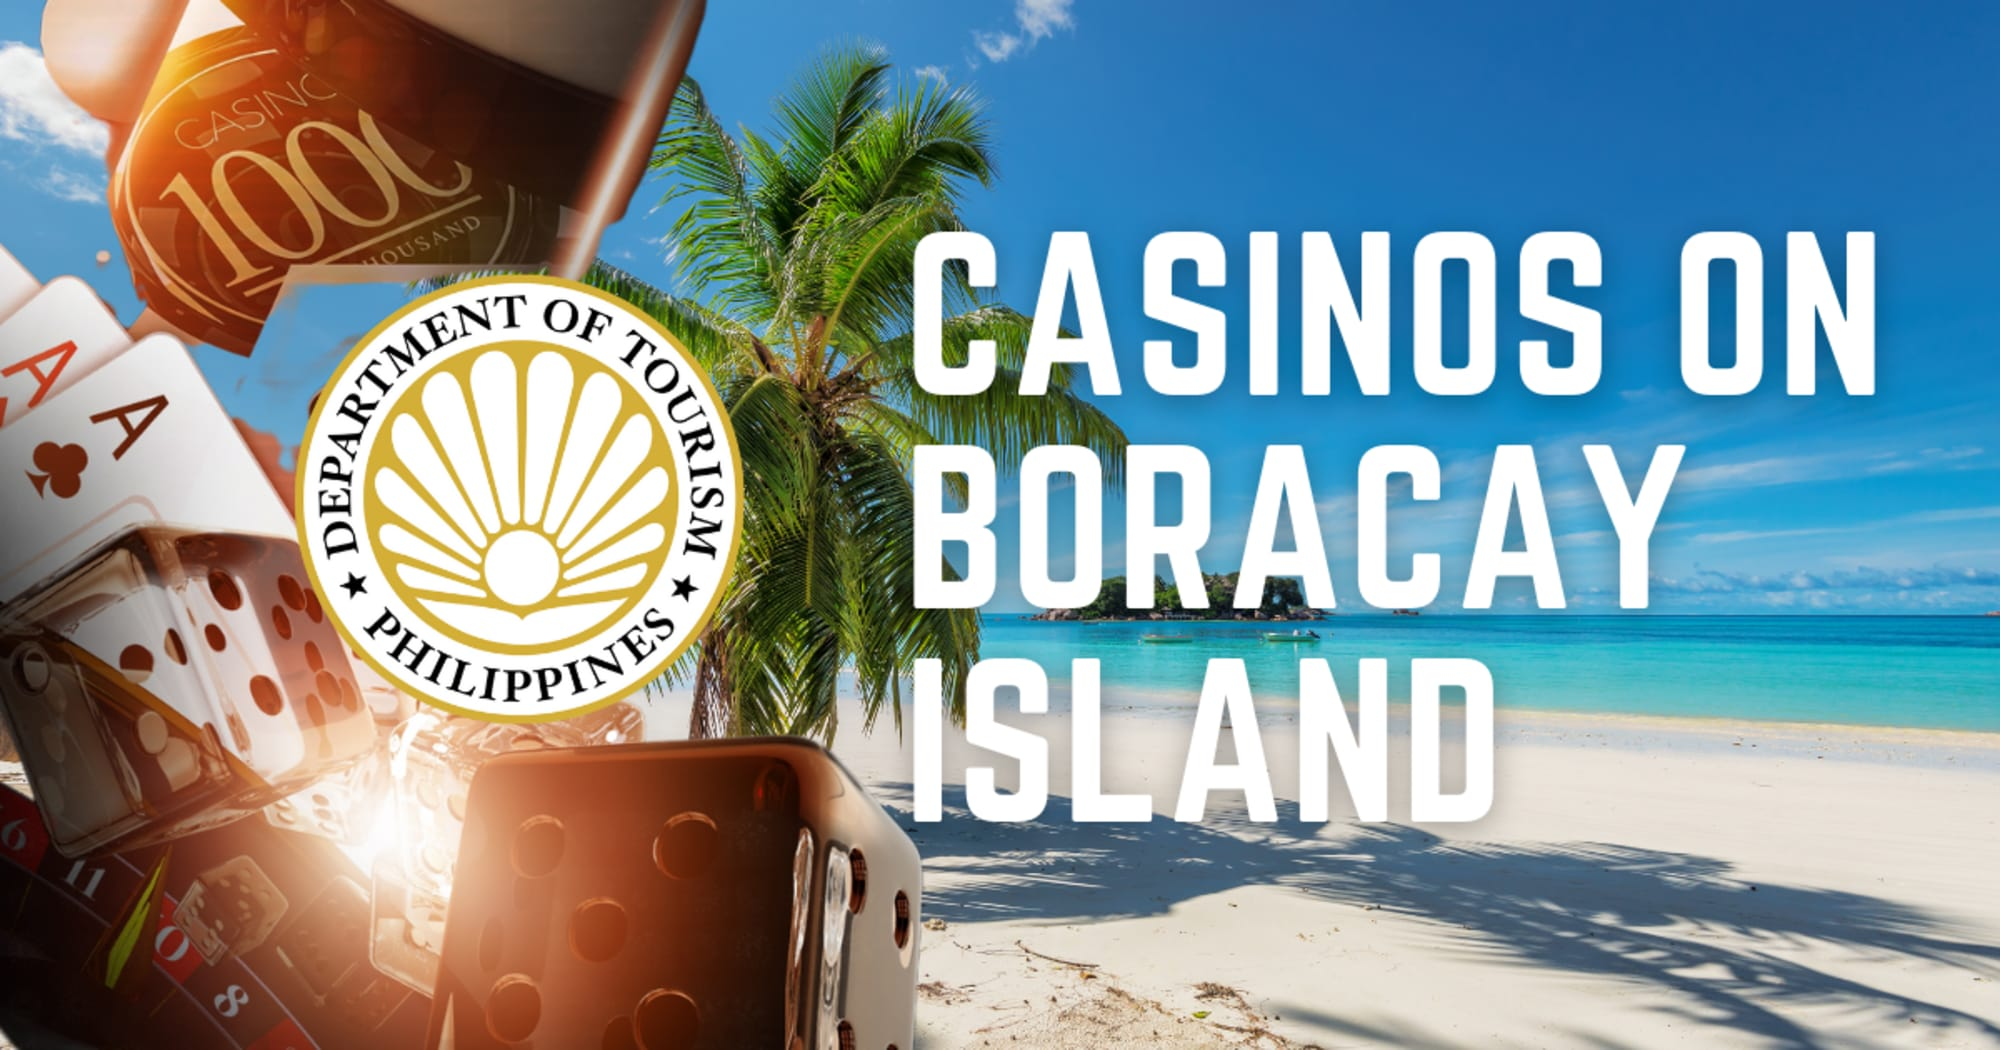 DOT will support the President's decision regarding the casinos on Boracay Island - Puyat